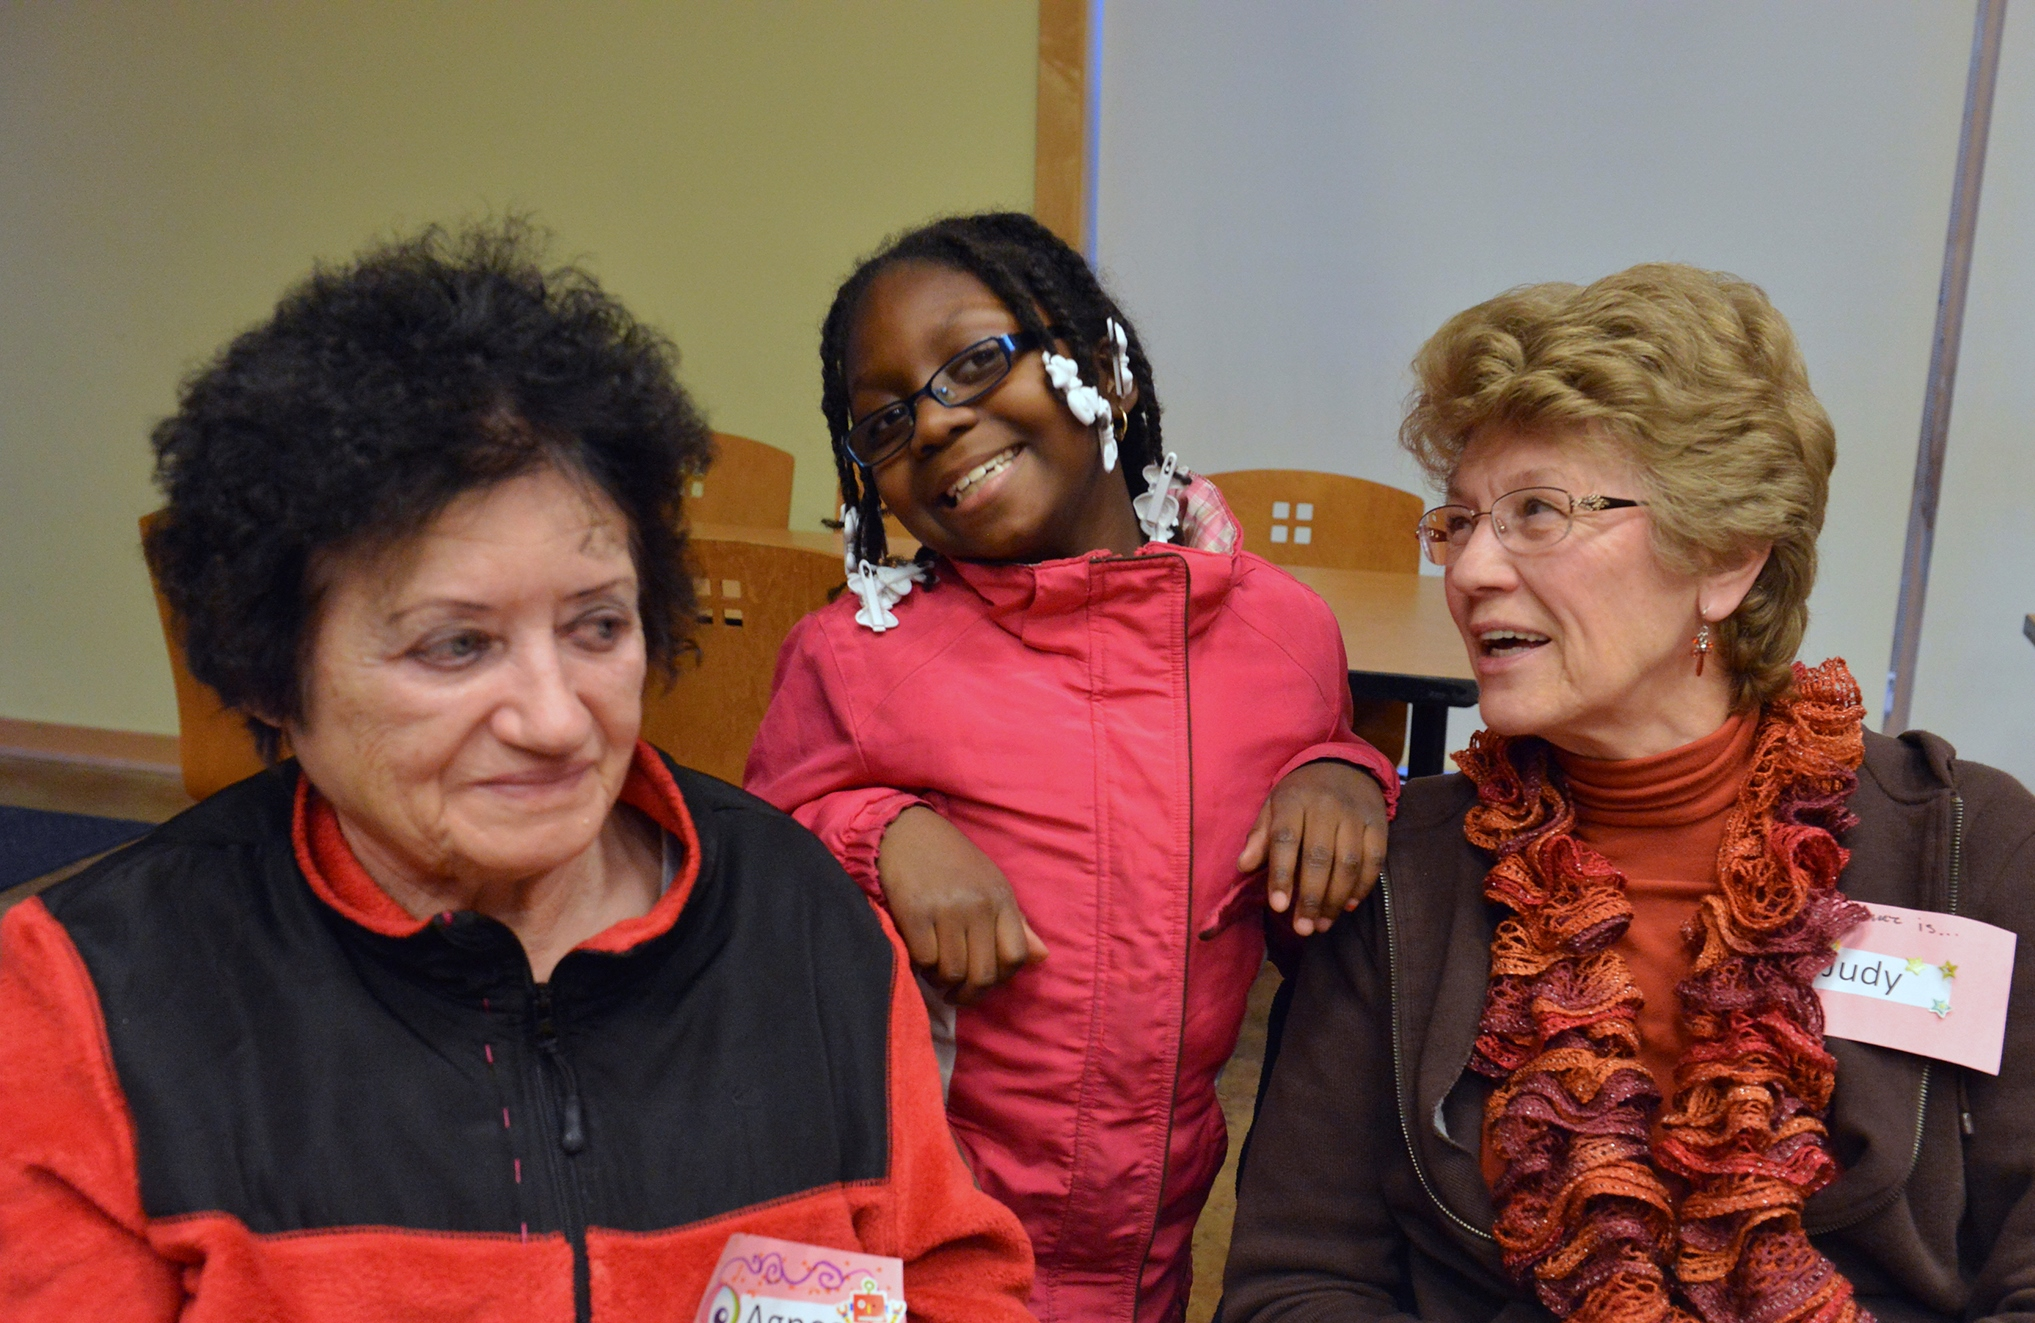 Lbfe intergenerational program